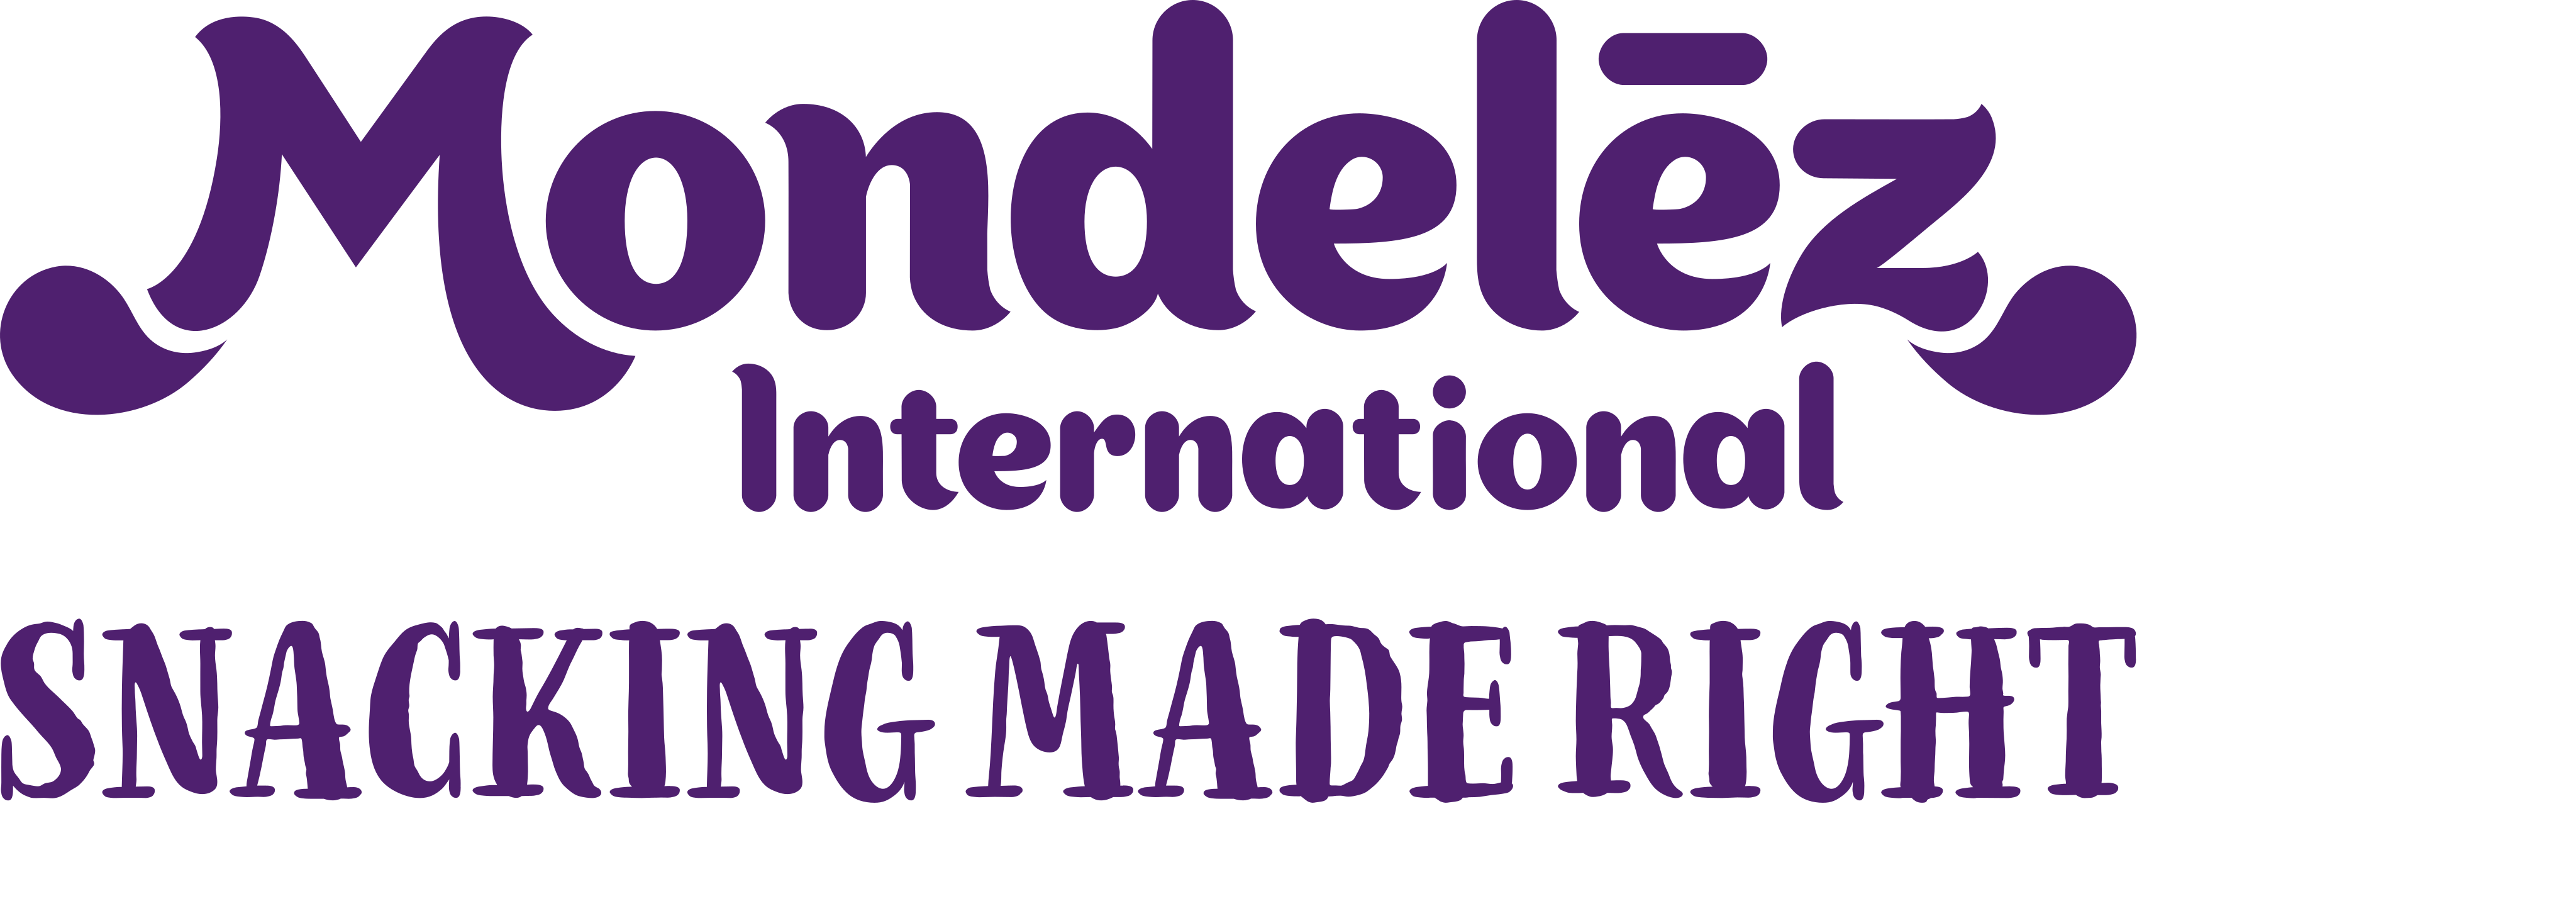 mondelez international logo 1 - Mondelēz International Logo